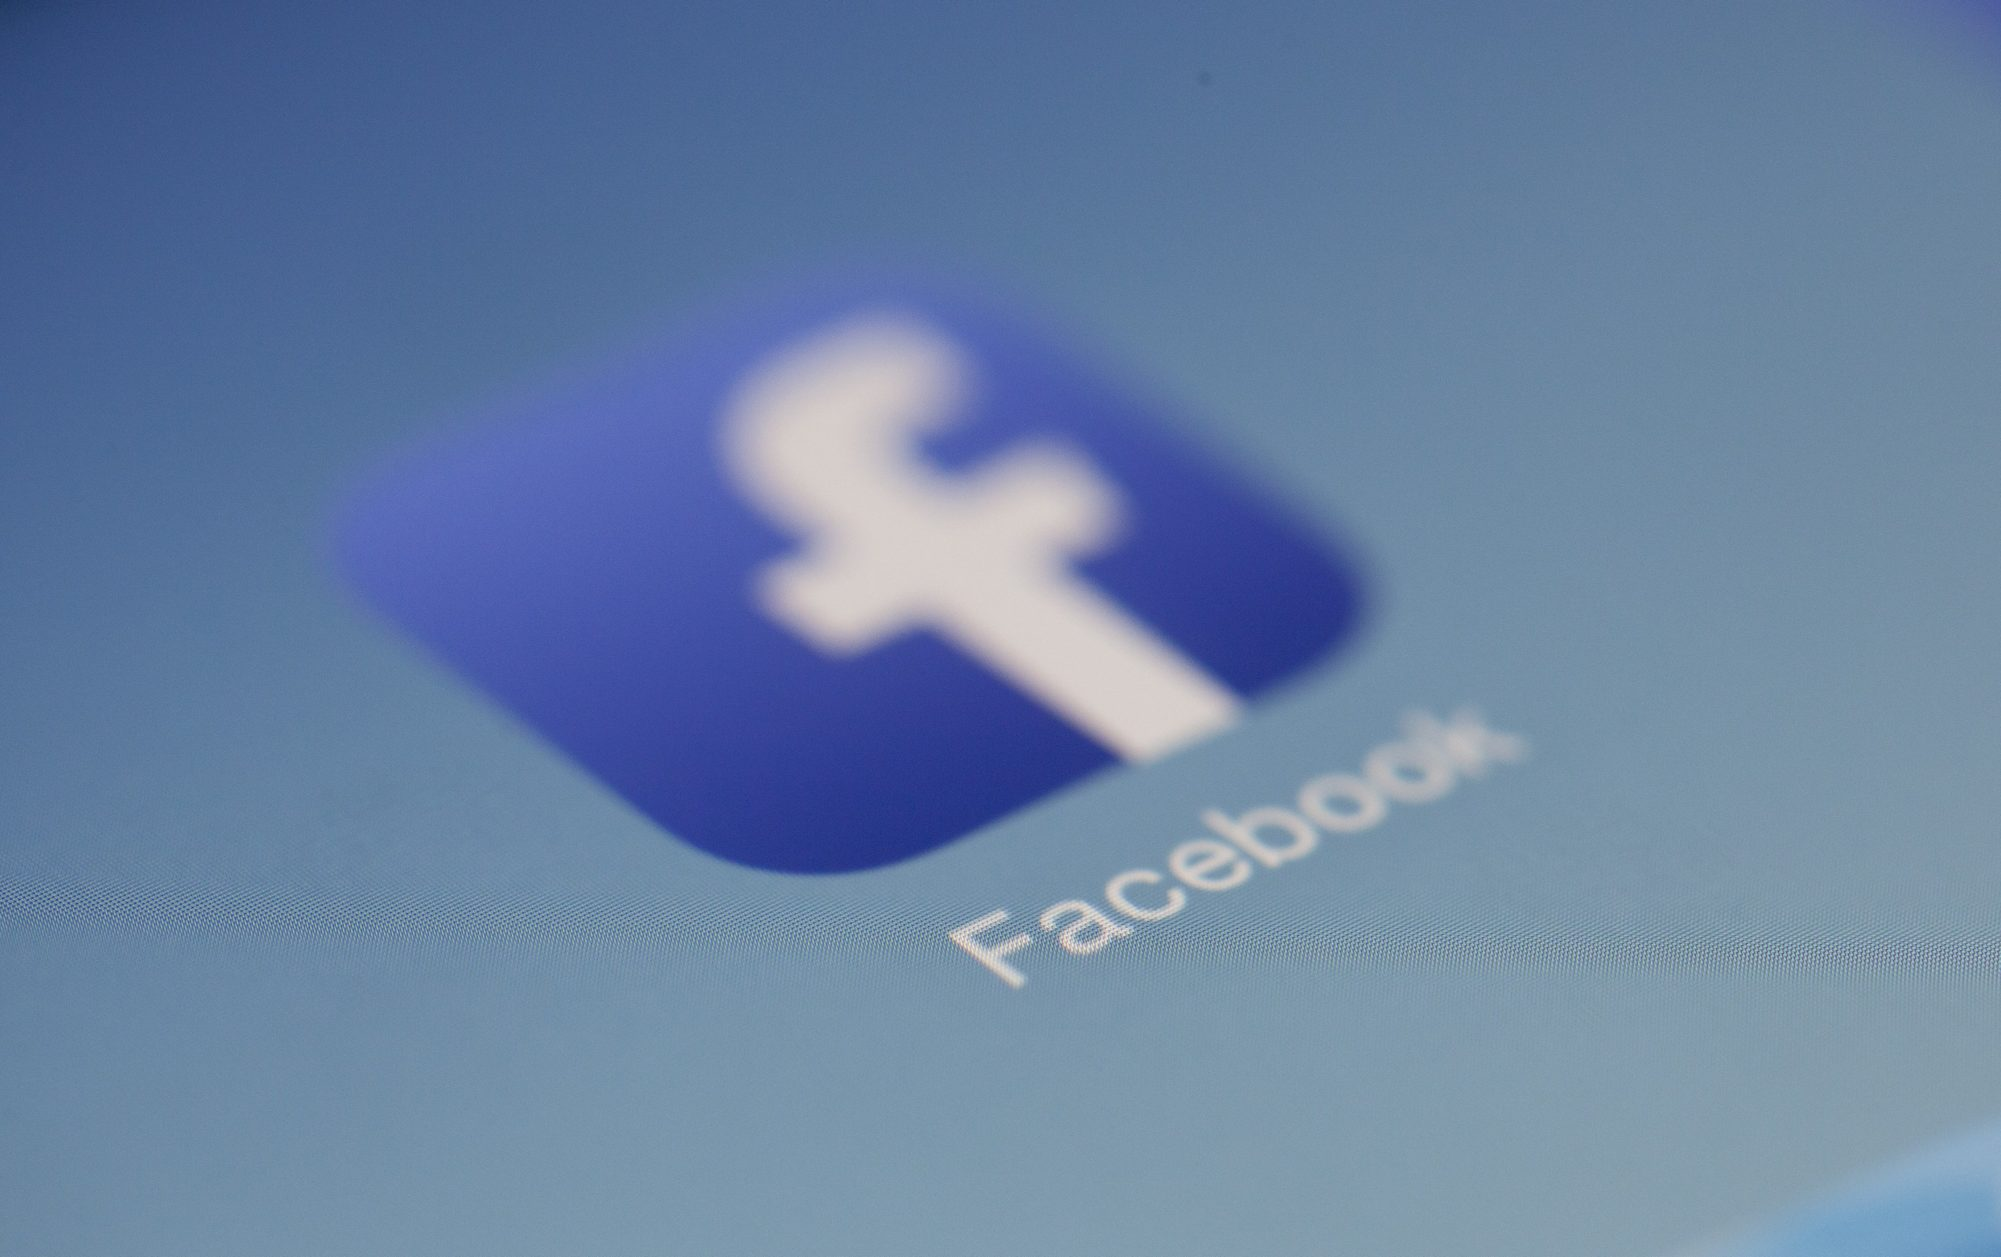 If you use Facebook, watch out for this developing attack